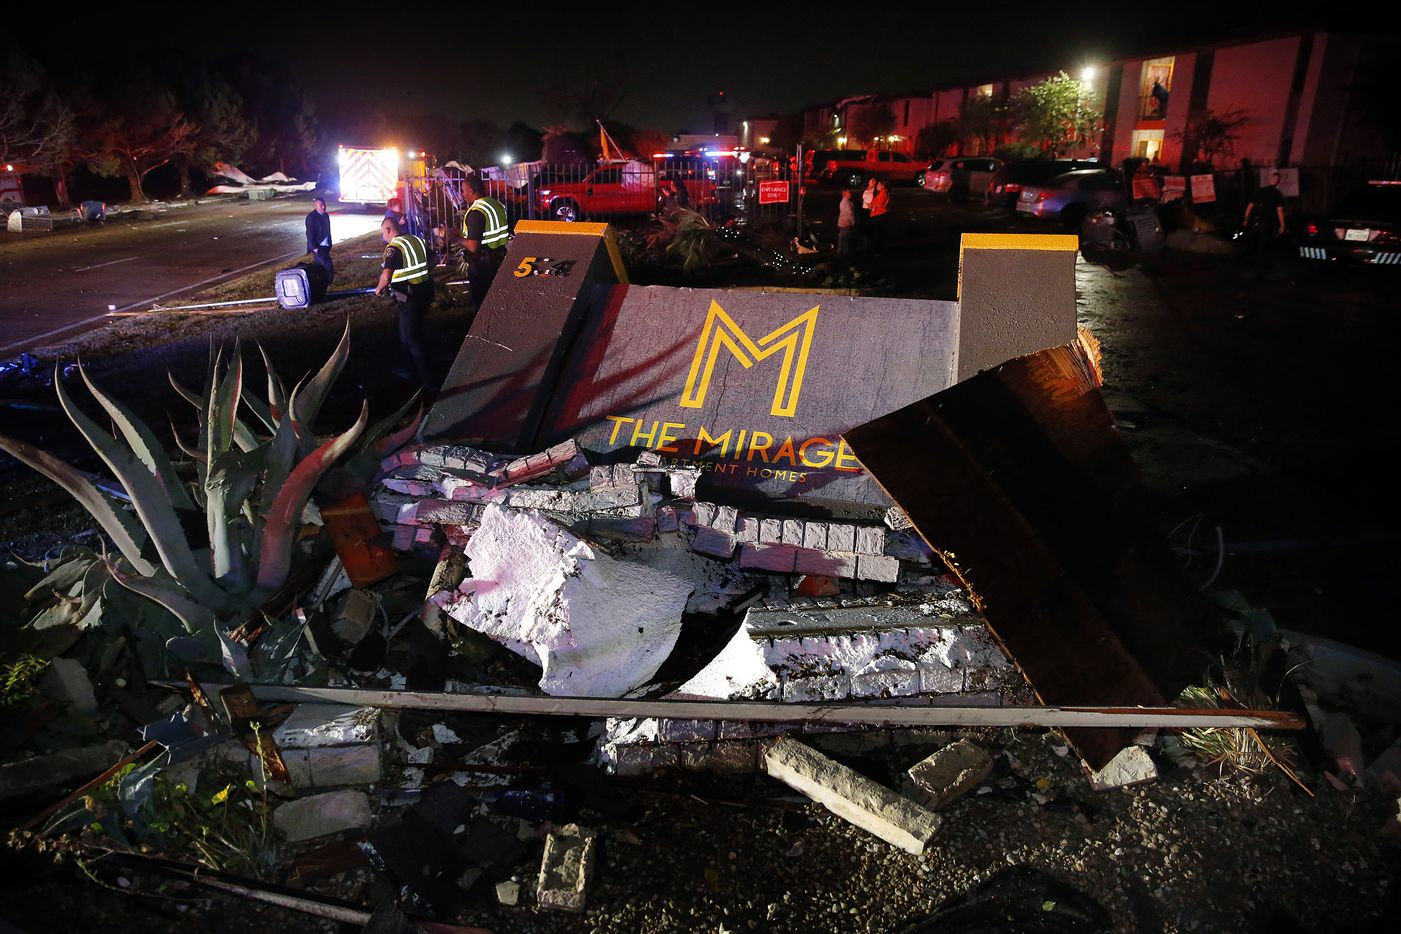 The Mirage Apartments sign lies damaged along Pioneer Parkway in Arlington following a tornado-warned storm, Tuesday night, November 24, 2020. Apartment building roofs, air conditioner units and other structural debris were scattered across the property and the street.  (Tom Fox/The Dallas Morning News)